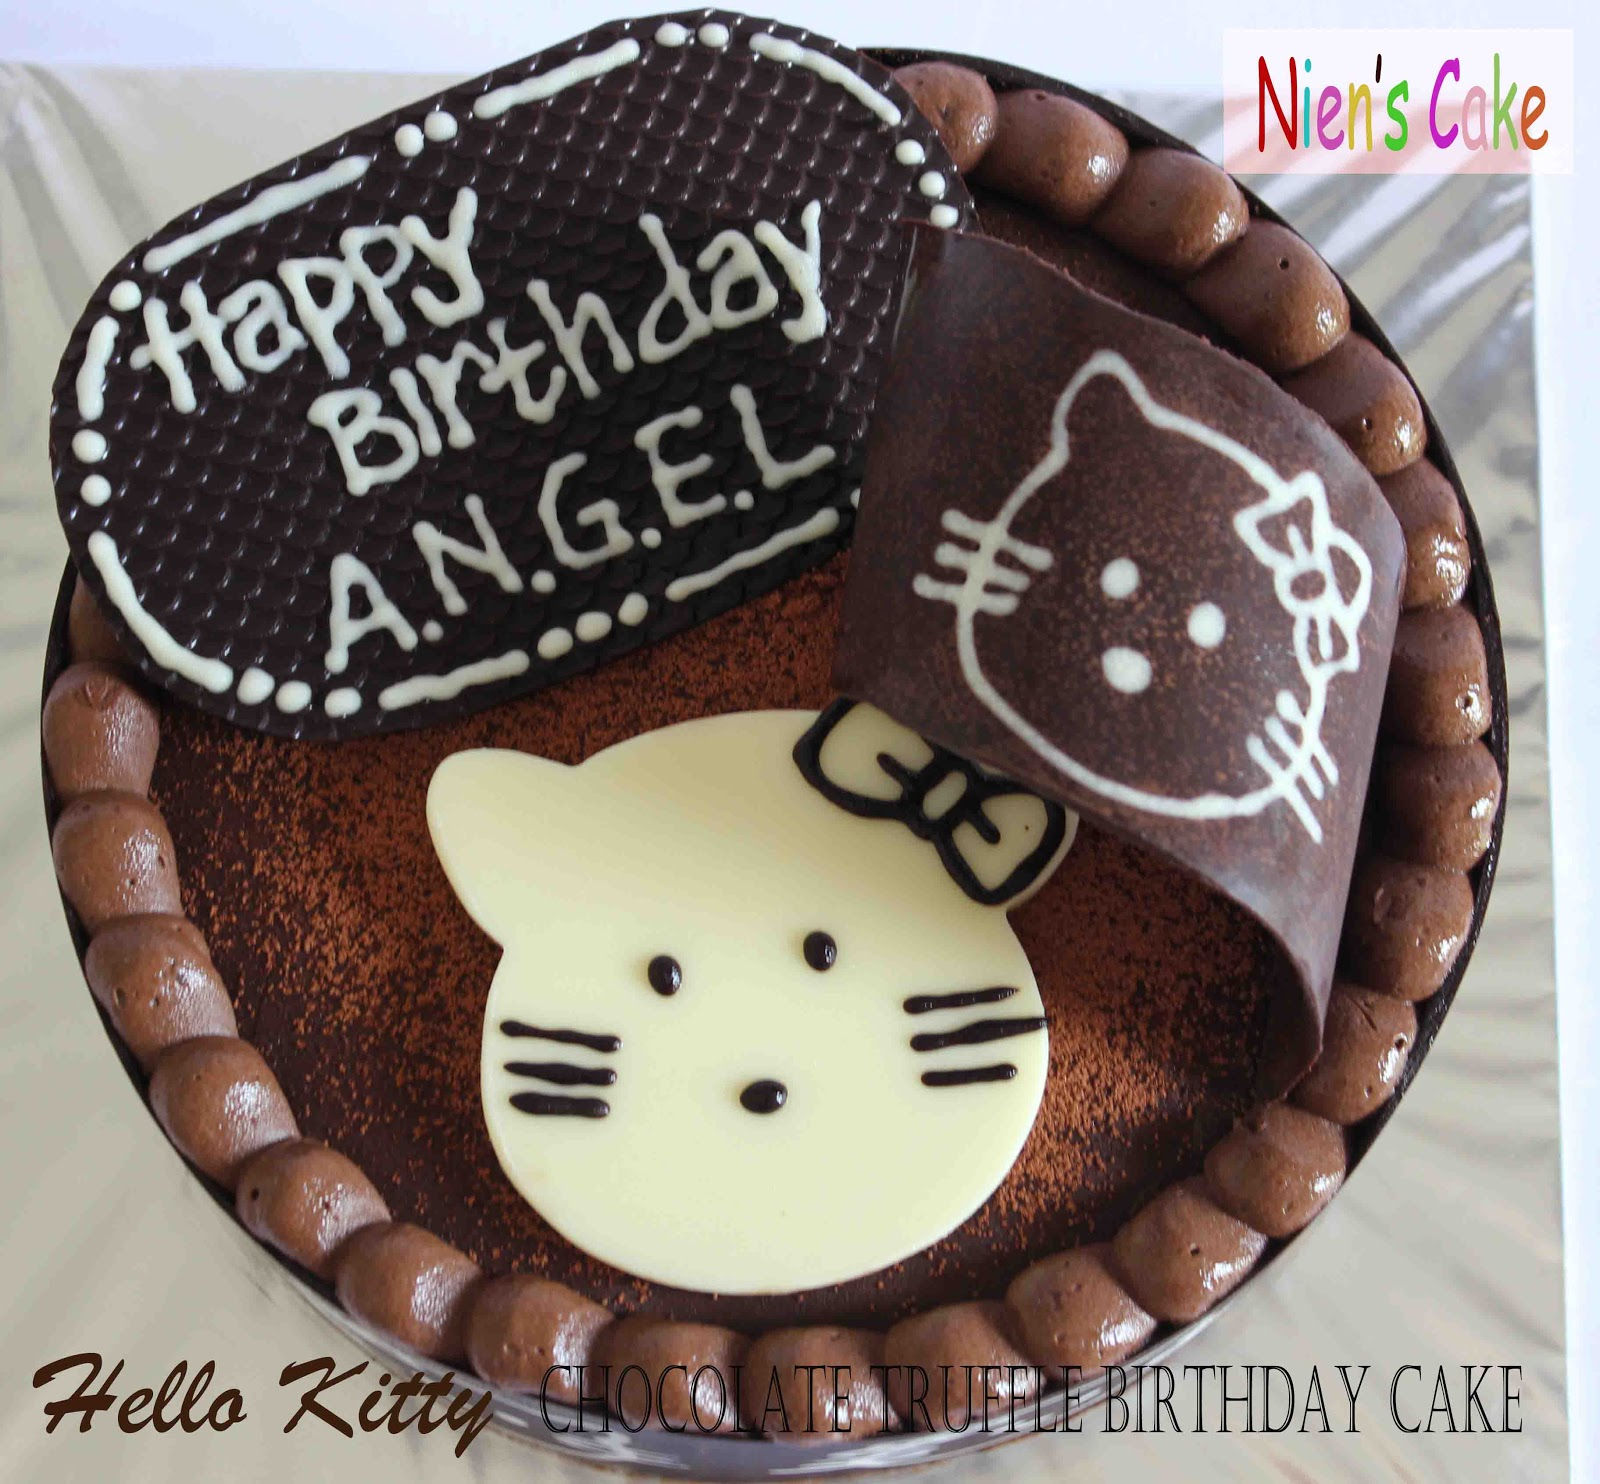 Umek Di Dapur Hello Kitty Choco Truffle Birthday Cake